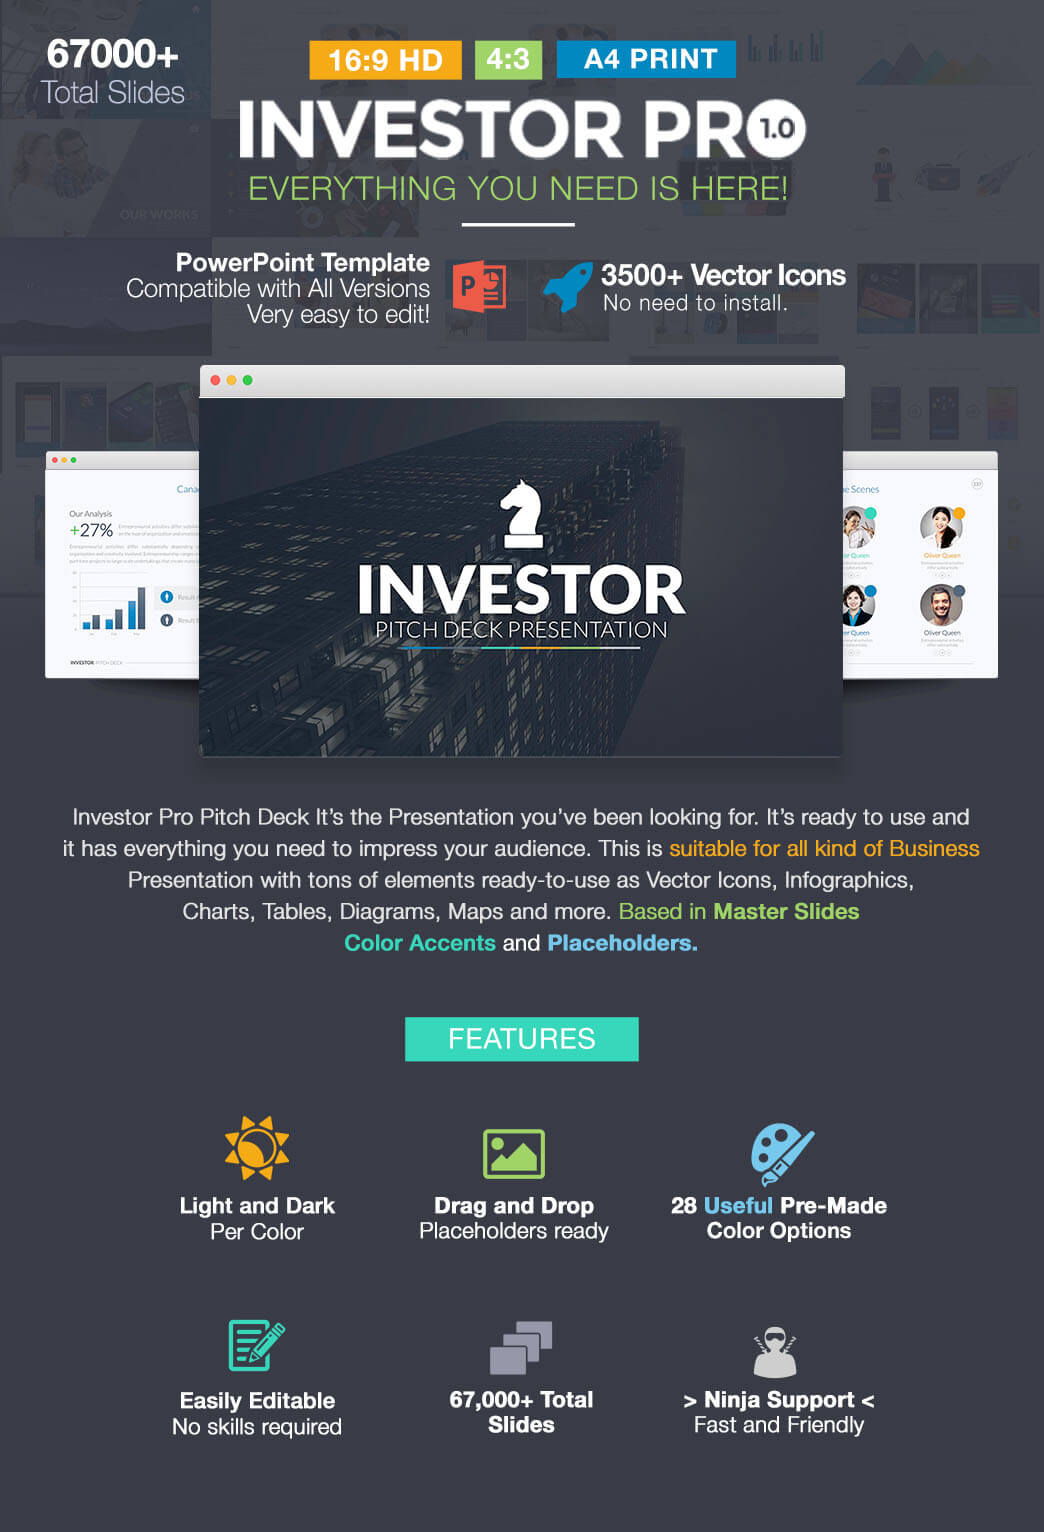 Investor Pro PowerPoint Template